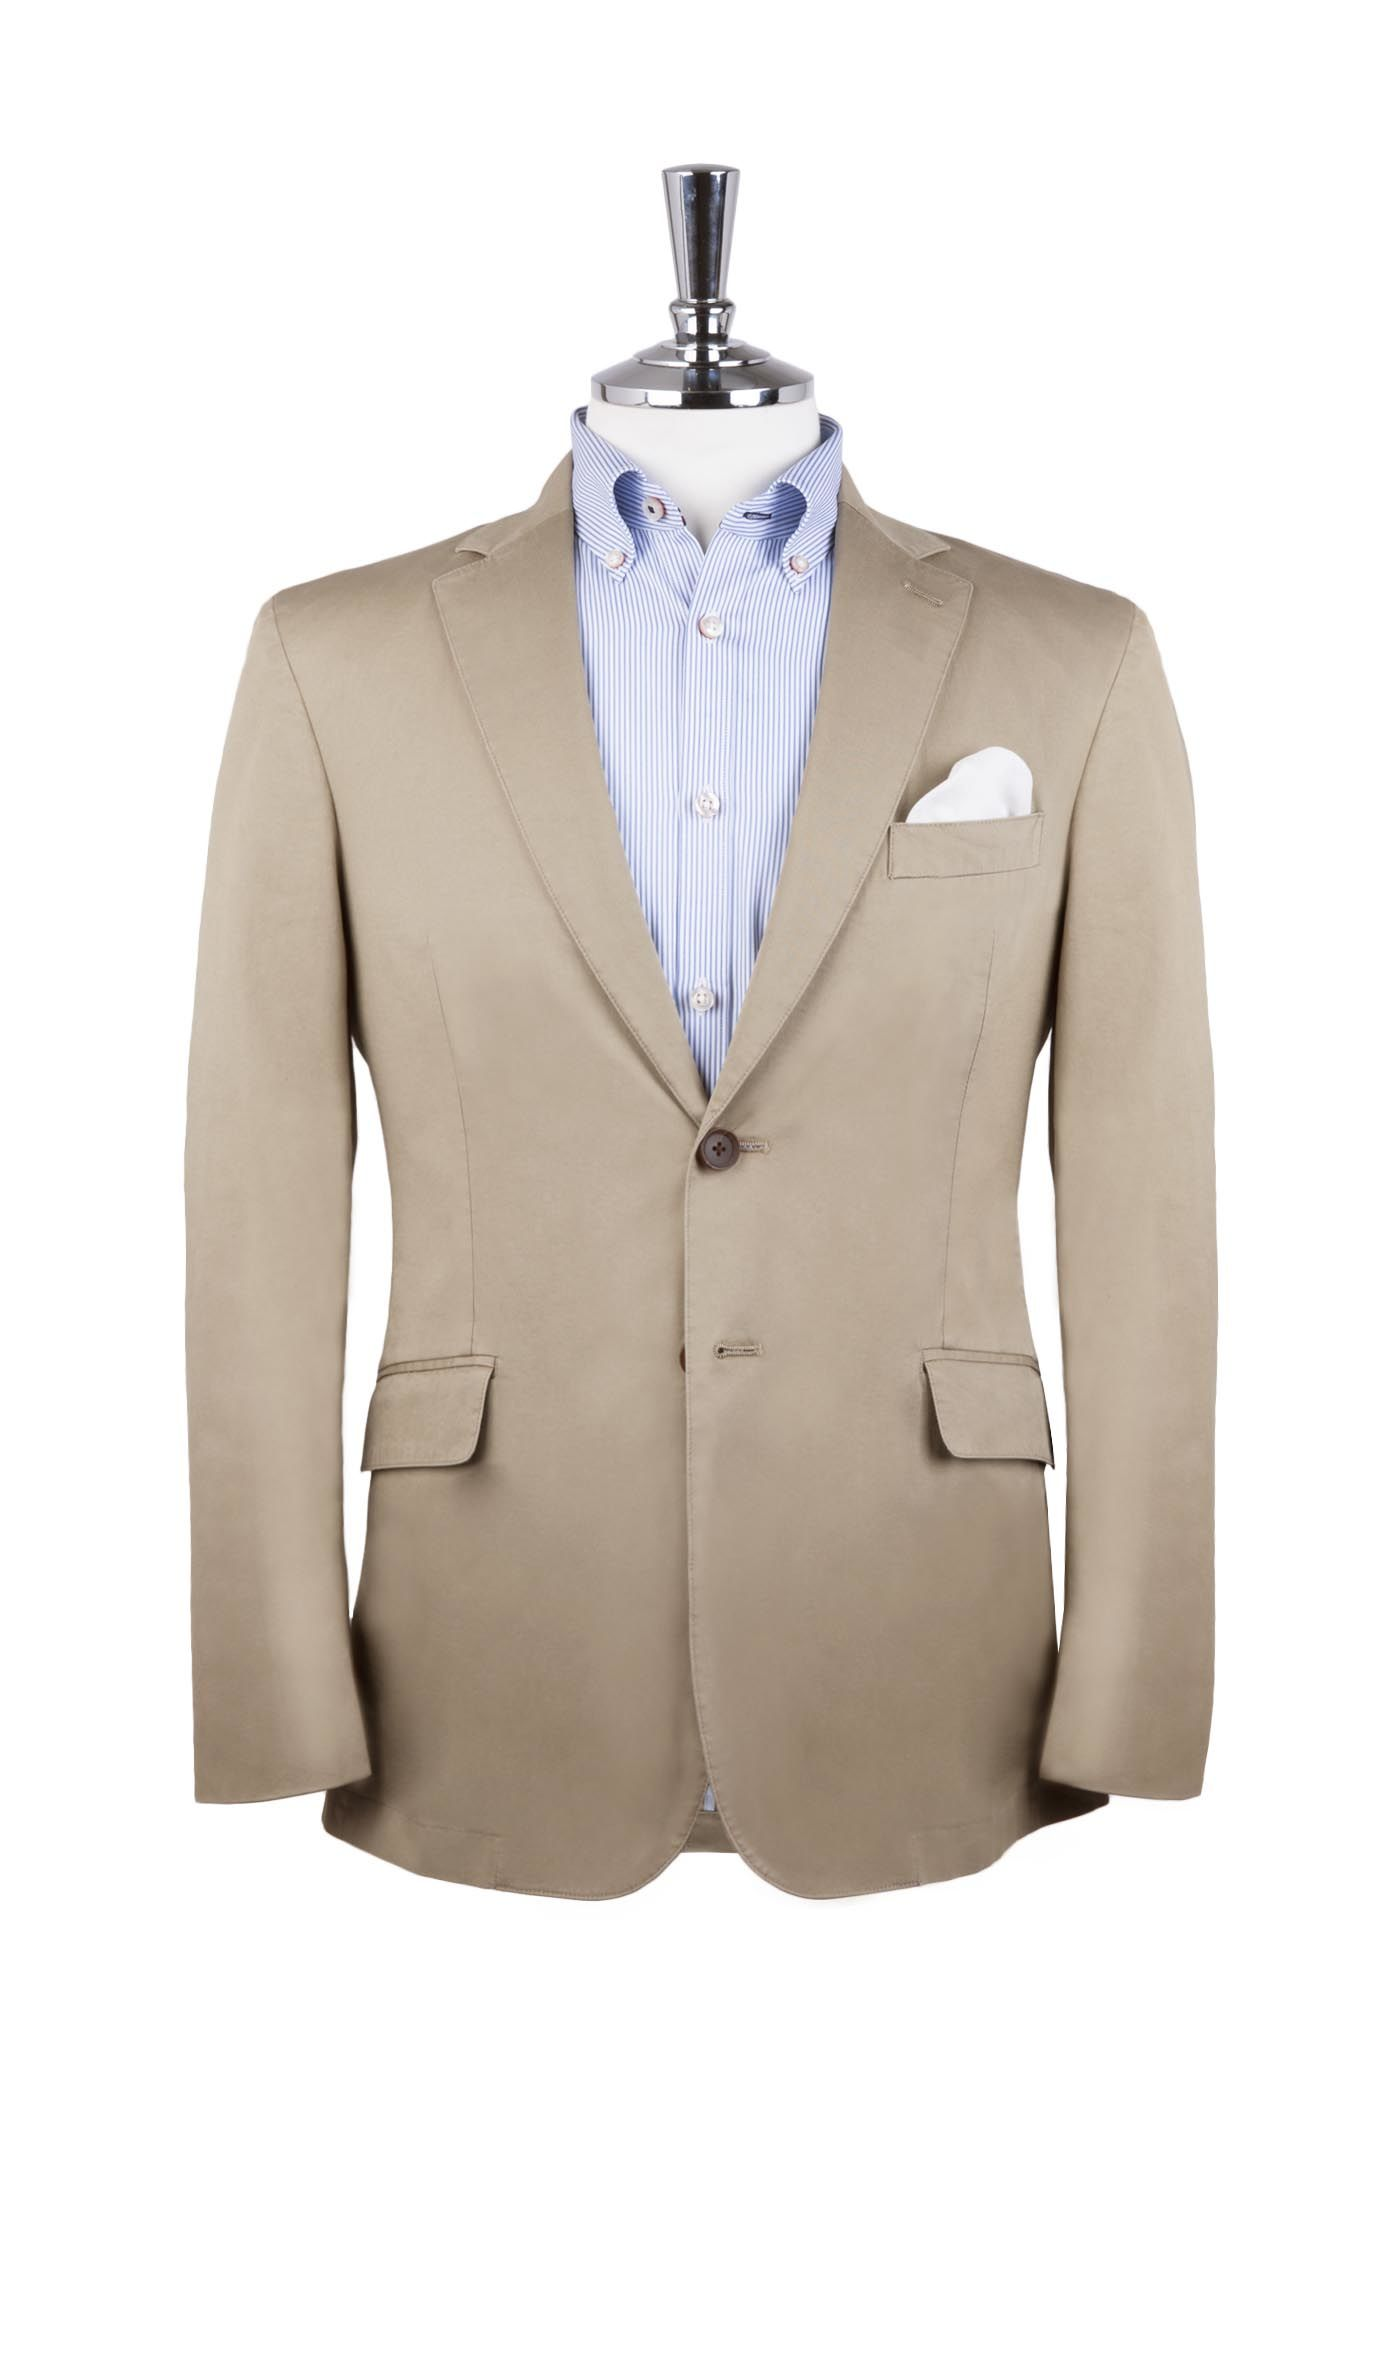 T.M.Lewin Lindfield Camel Italian Stretch Cotton Jacket